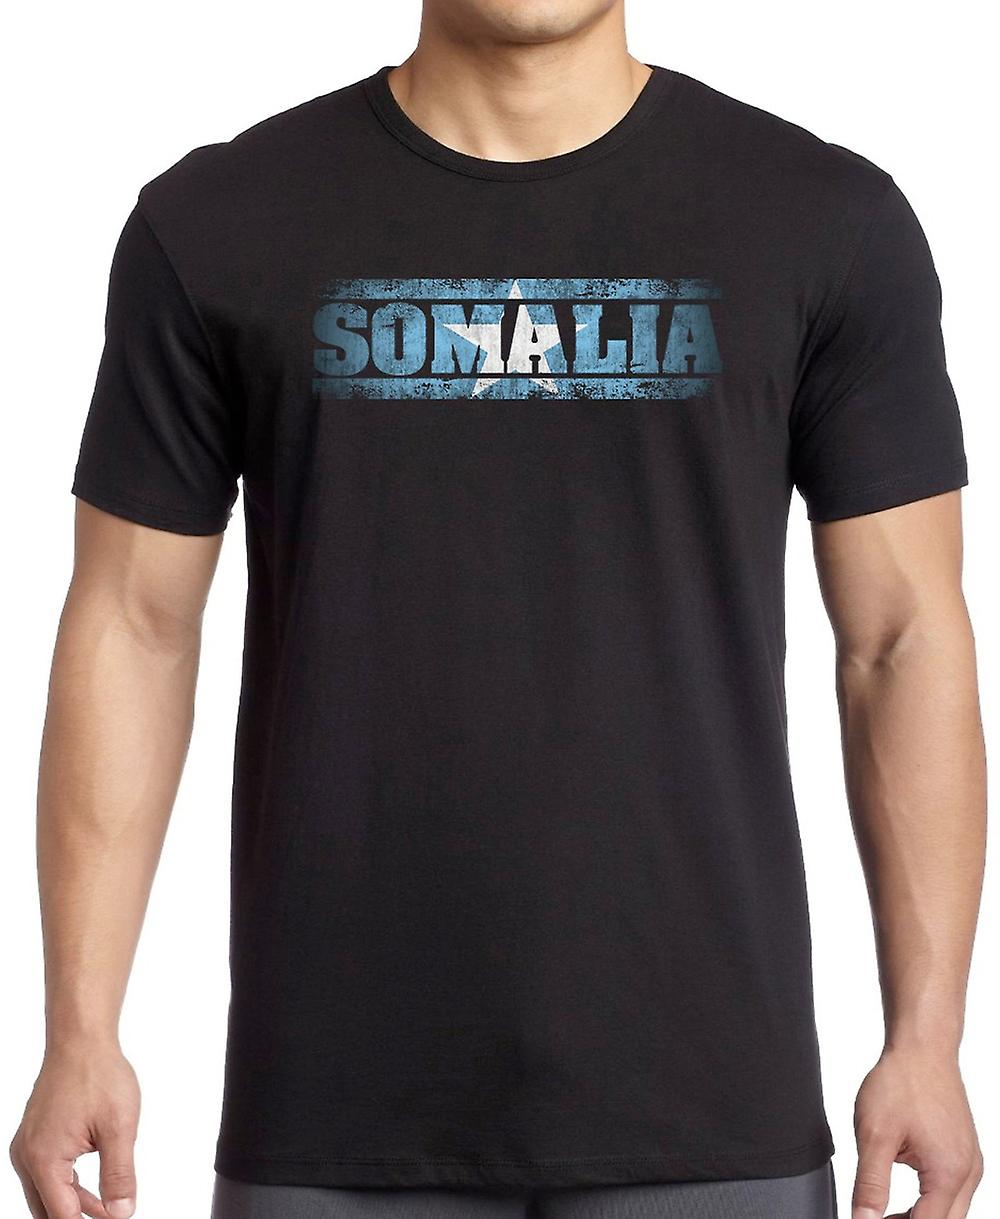 Somalia Flag - Words T Shirt